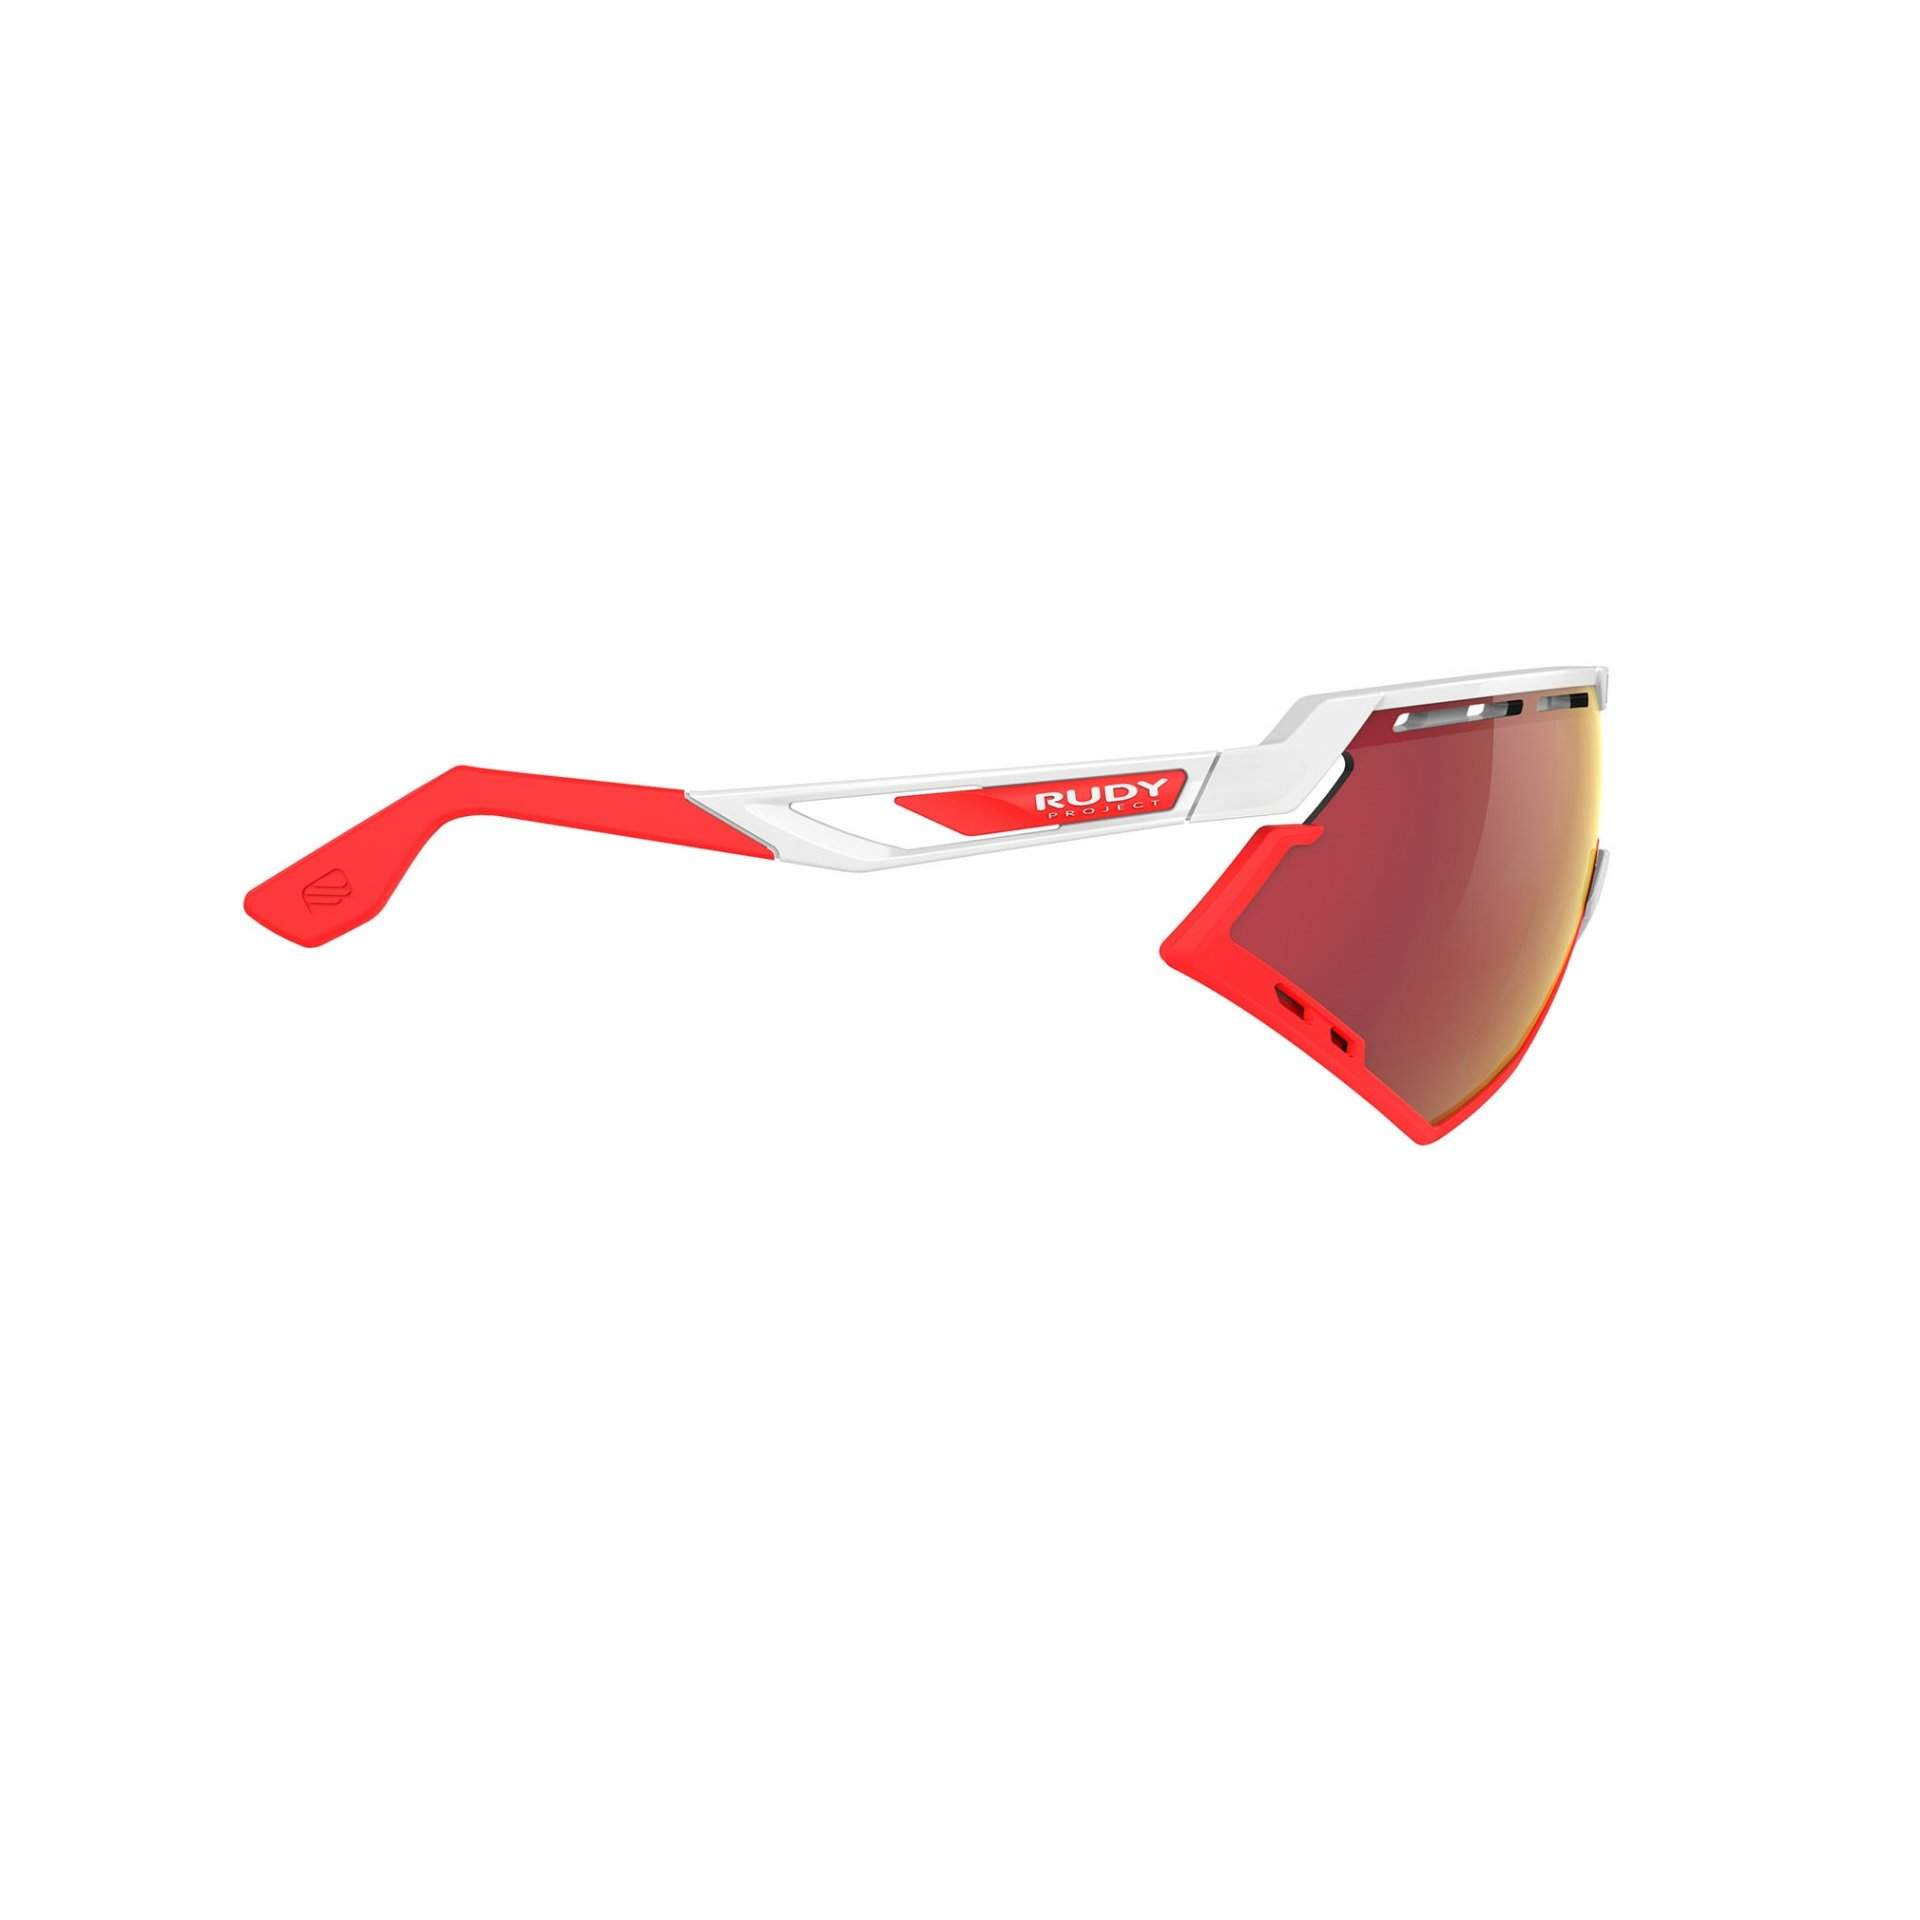 OKULARY RUDY PROJECT DEFENDER MULTILASER RED + WHITE GLOSS|BUMPRES RED FLUO SP5238690000 Z BOKU